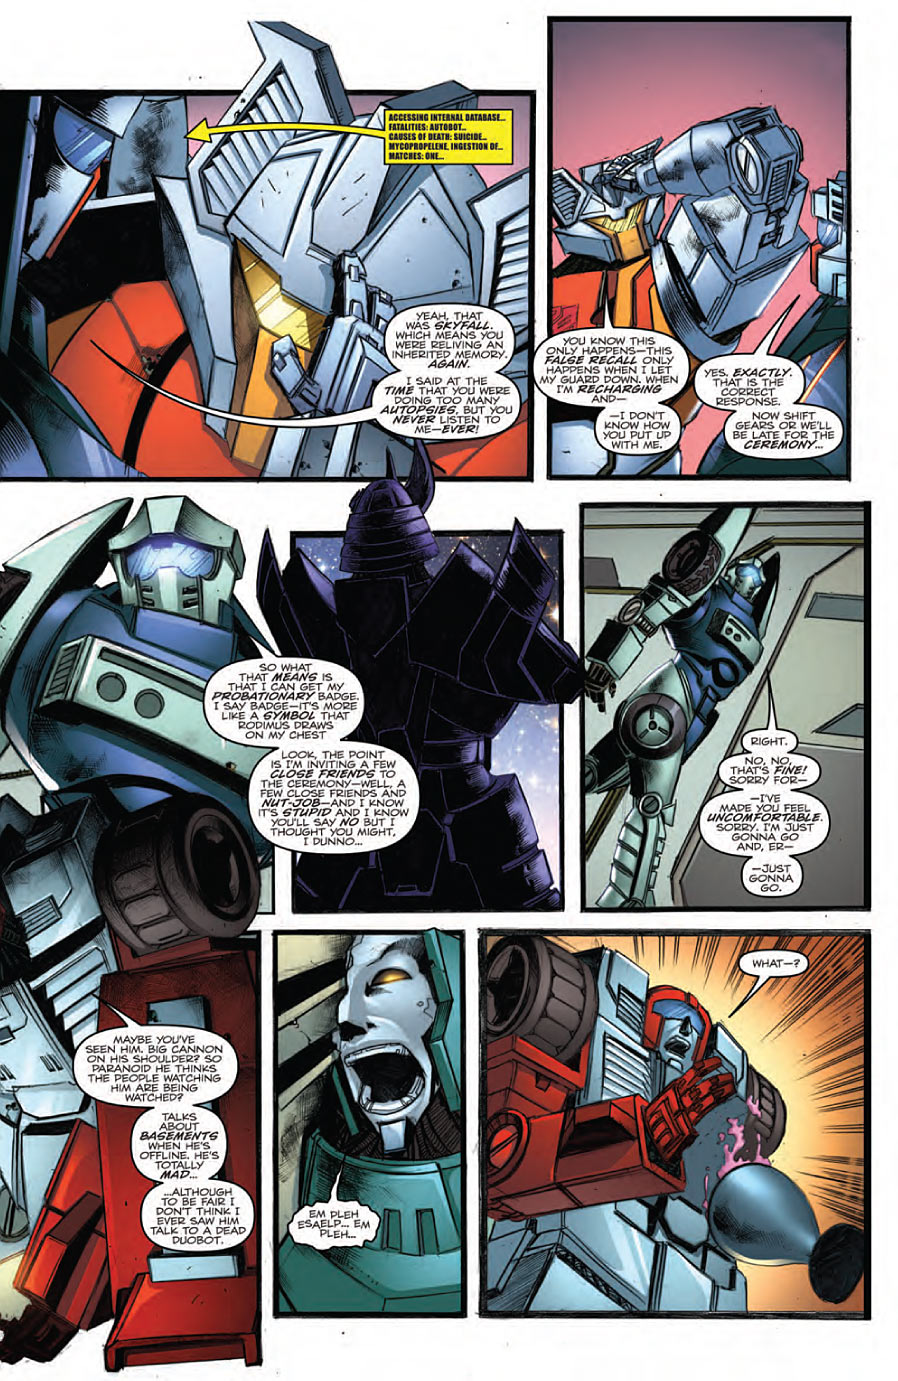 transformers-comics-more-than-meets-the-eye-annual-2012-page-7 Transformers More Than Meets the Eye Annual 2012